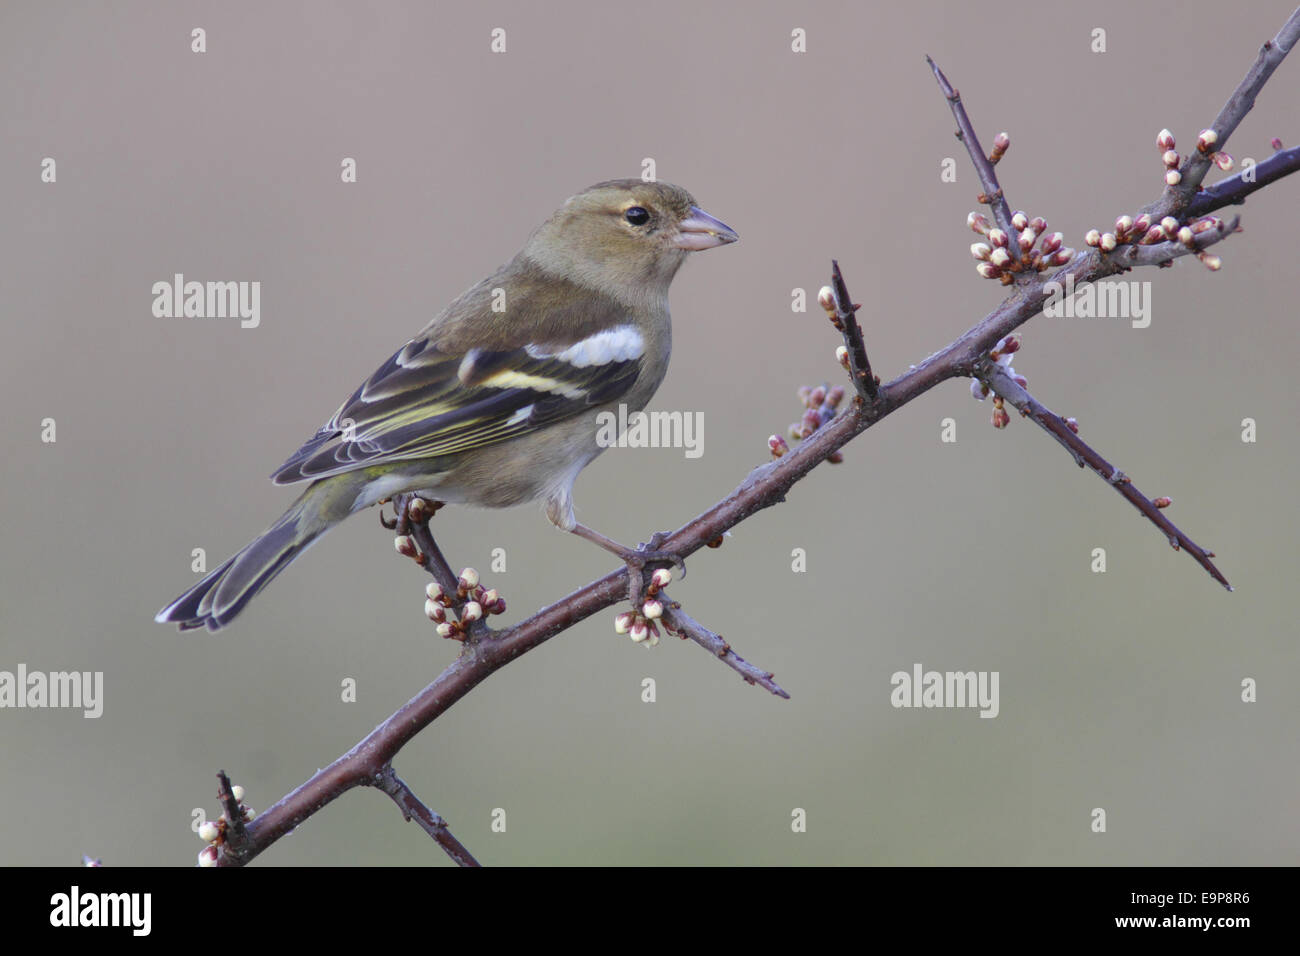 Common Chaffinch (Fringilla coelebs) adult female, perched on Blackthorn (Prunus spinosa) twig with flowerbuds, - Stock Image